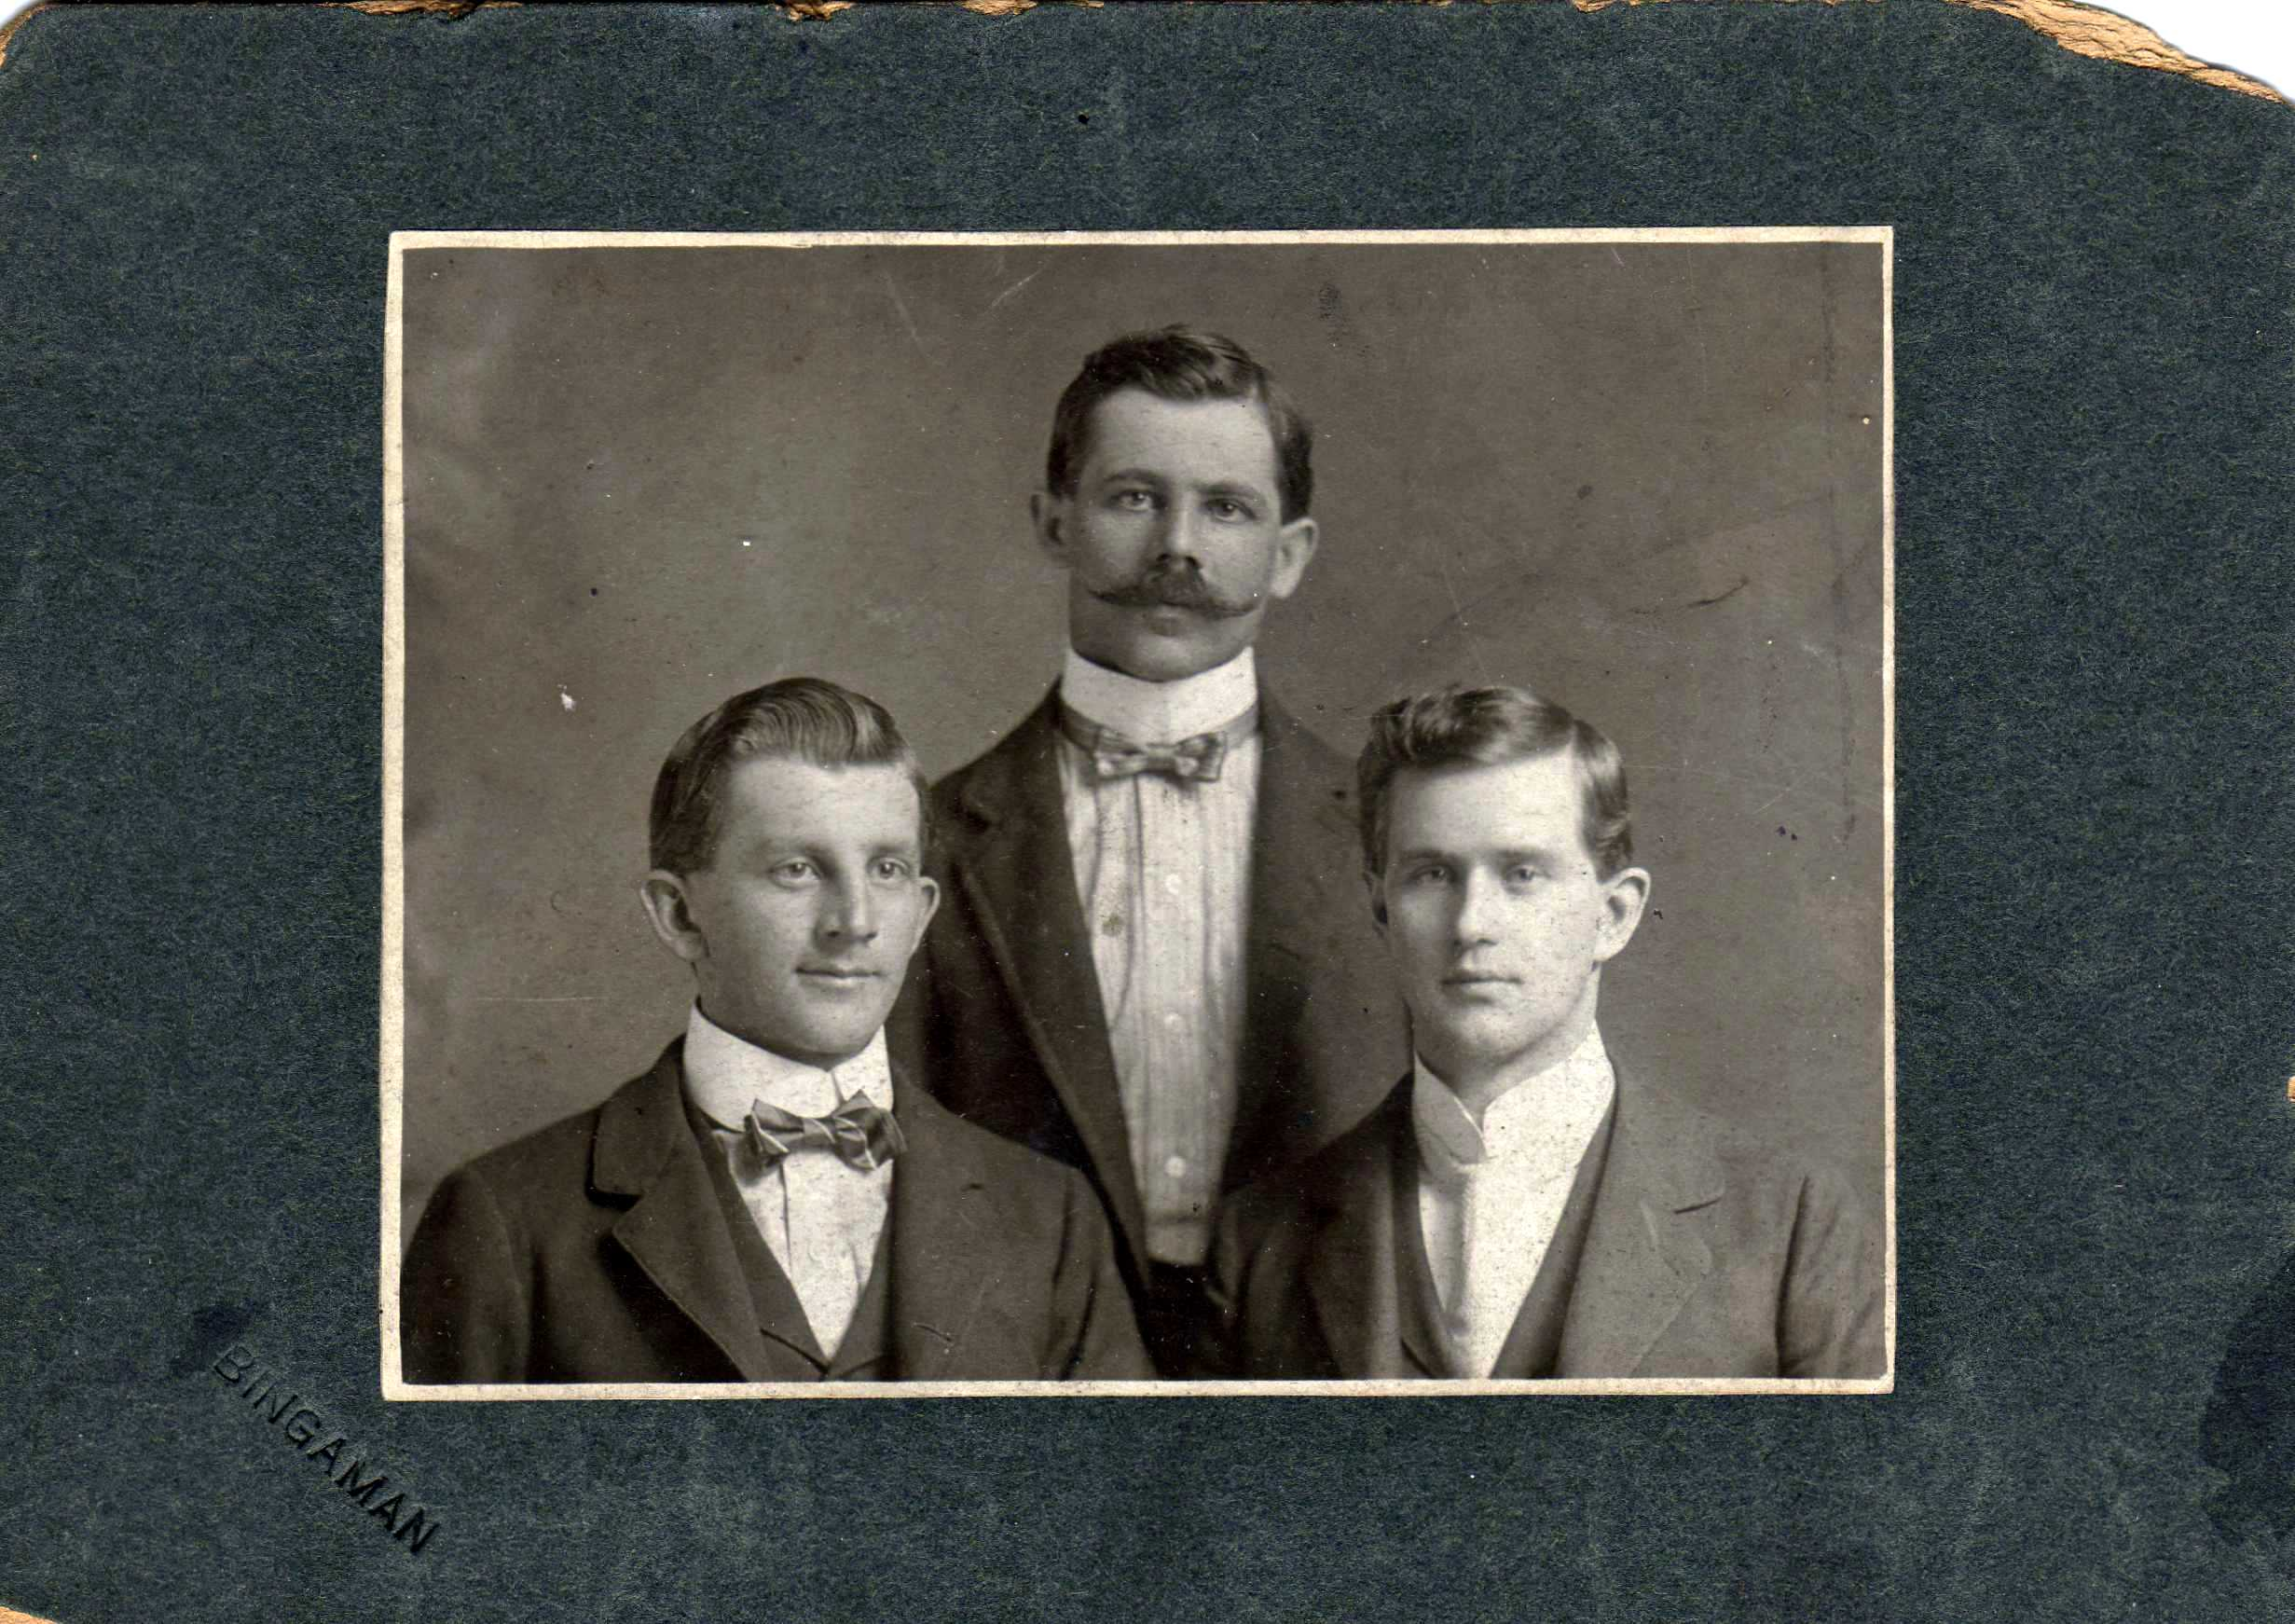 Wilday, Wilmer and Elmer Enyeart